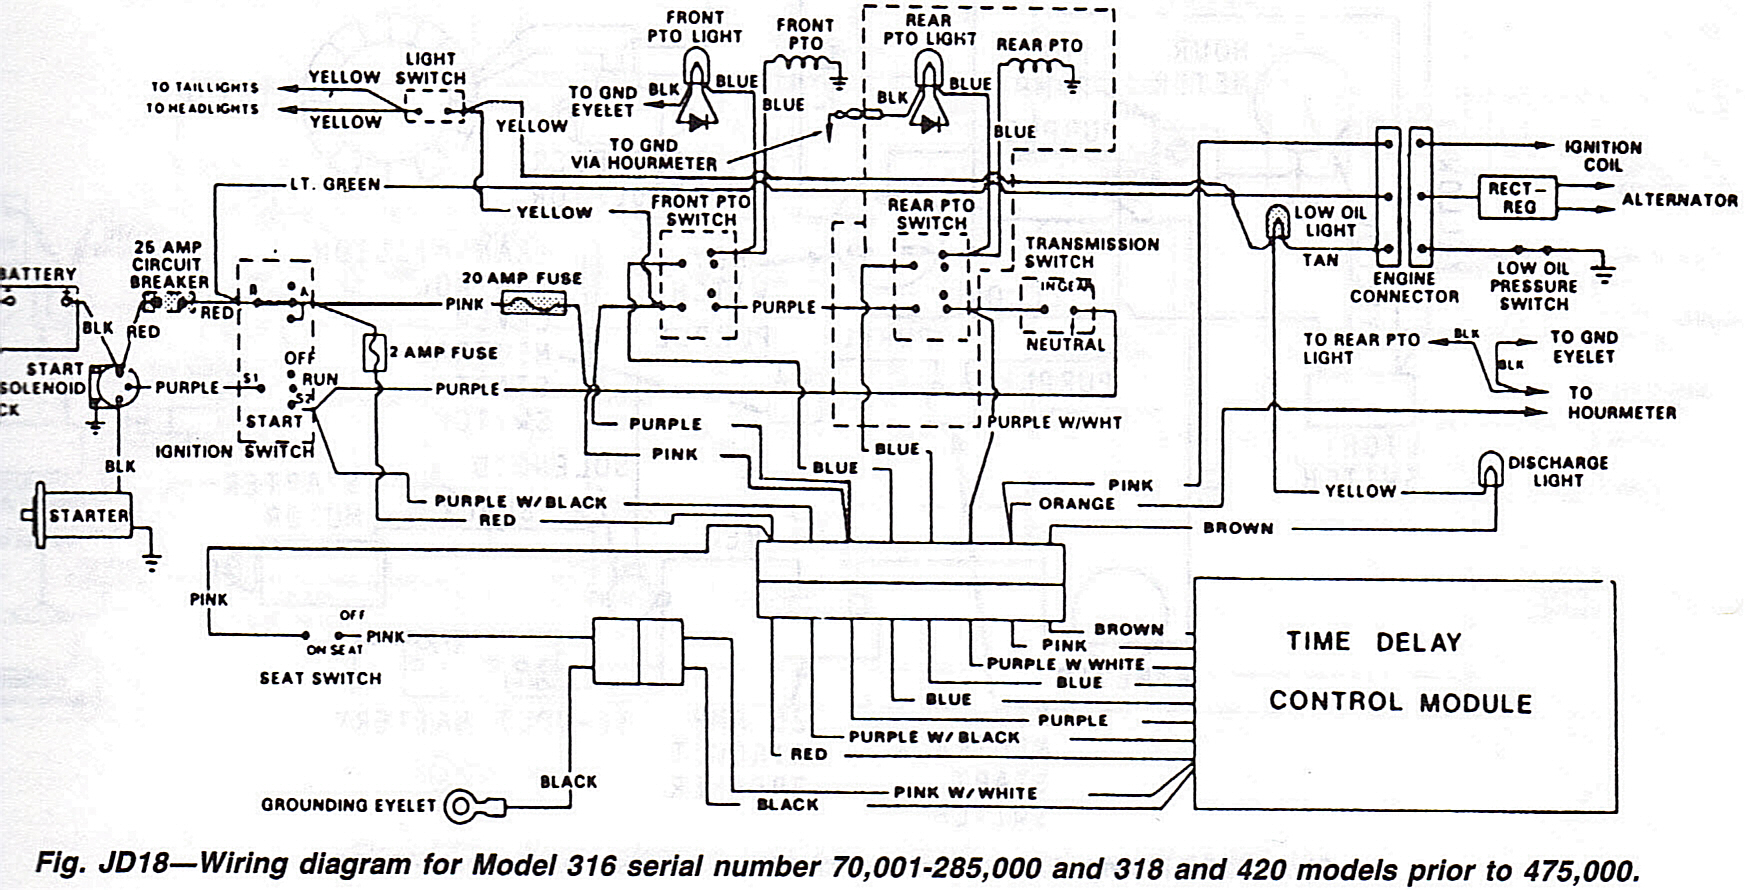 where do the wires hook to that run from the two fuses on a 318 rh justanswer com John Deere Parts Diagrams John Deere 140 Electrical Diagram